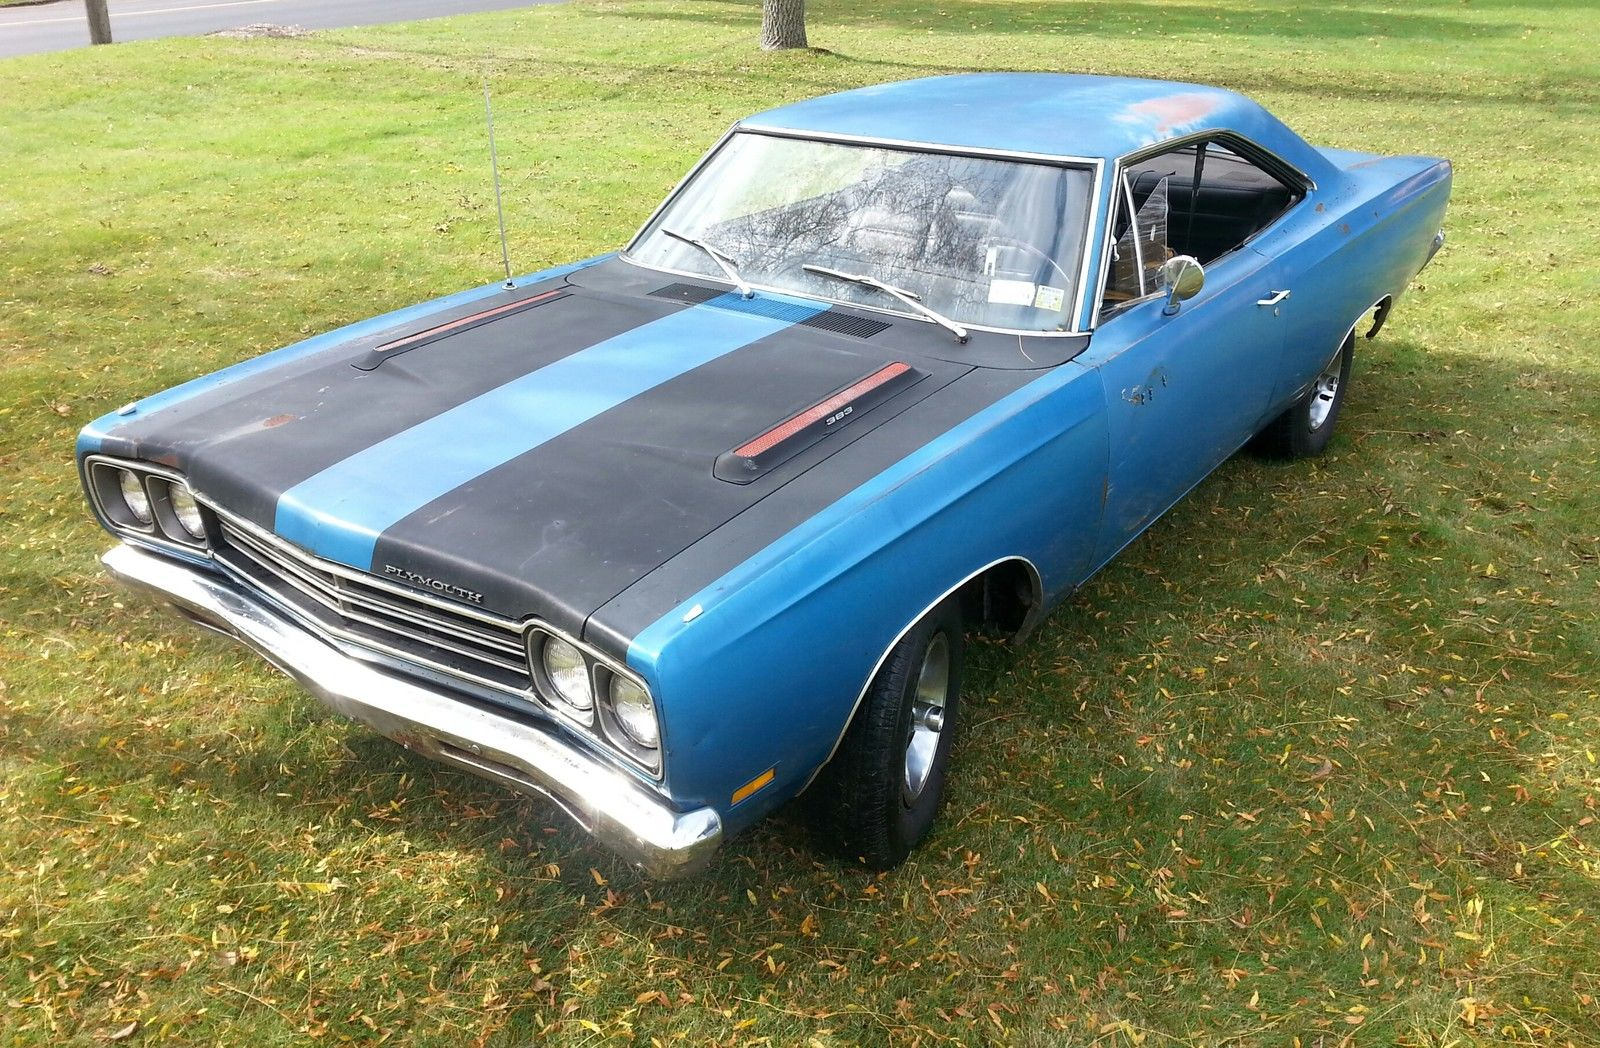 Original Paint B5 Blue 4-Speed 1969 Plymouth Road Runner on eBay ...